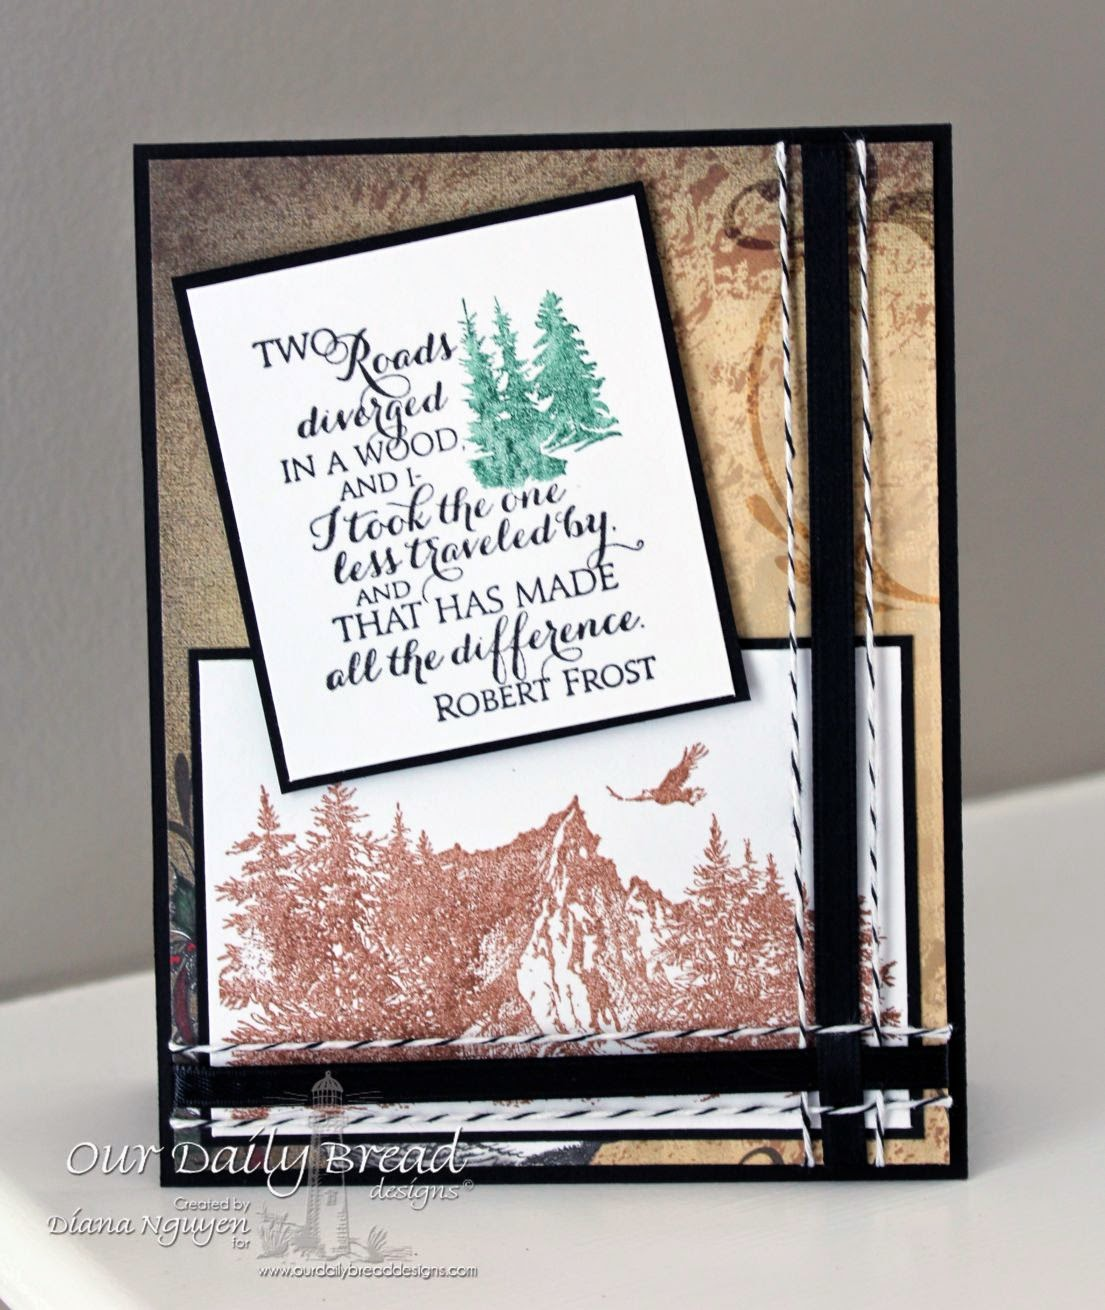 Our Daily Bread Designs, Quote Collection 1, Keep Climbing, Christmas Paper Collection 2013, Diana Nguyen